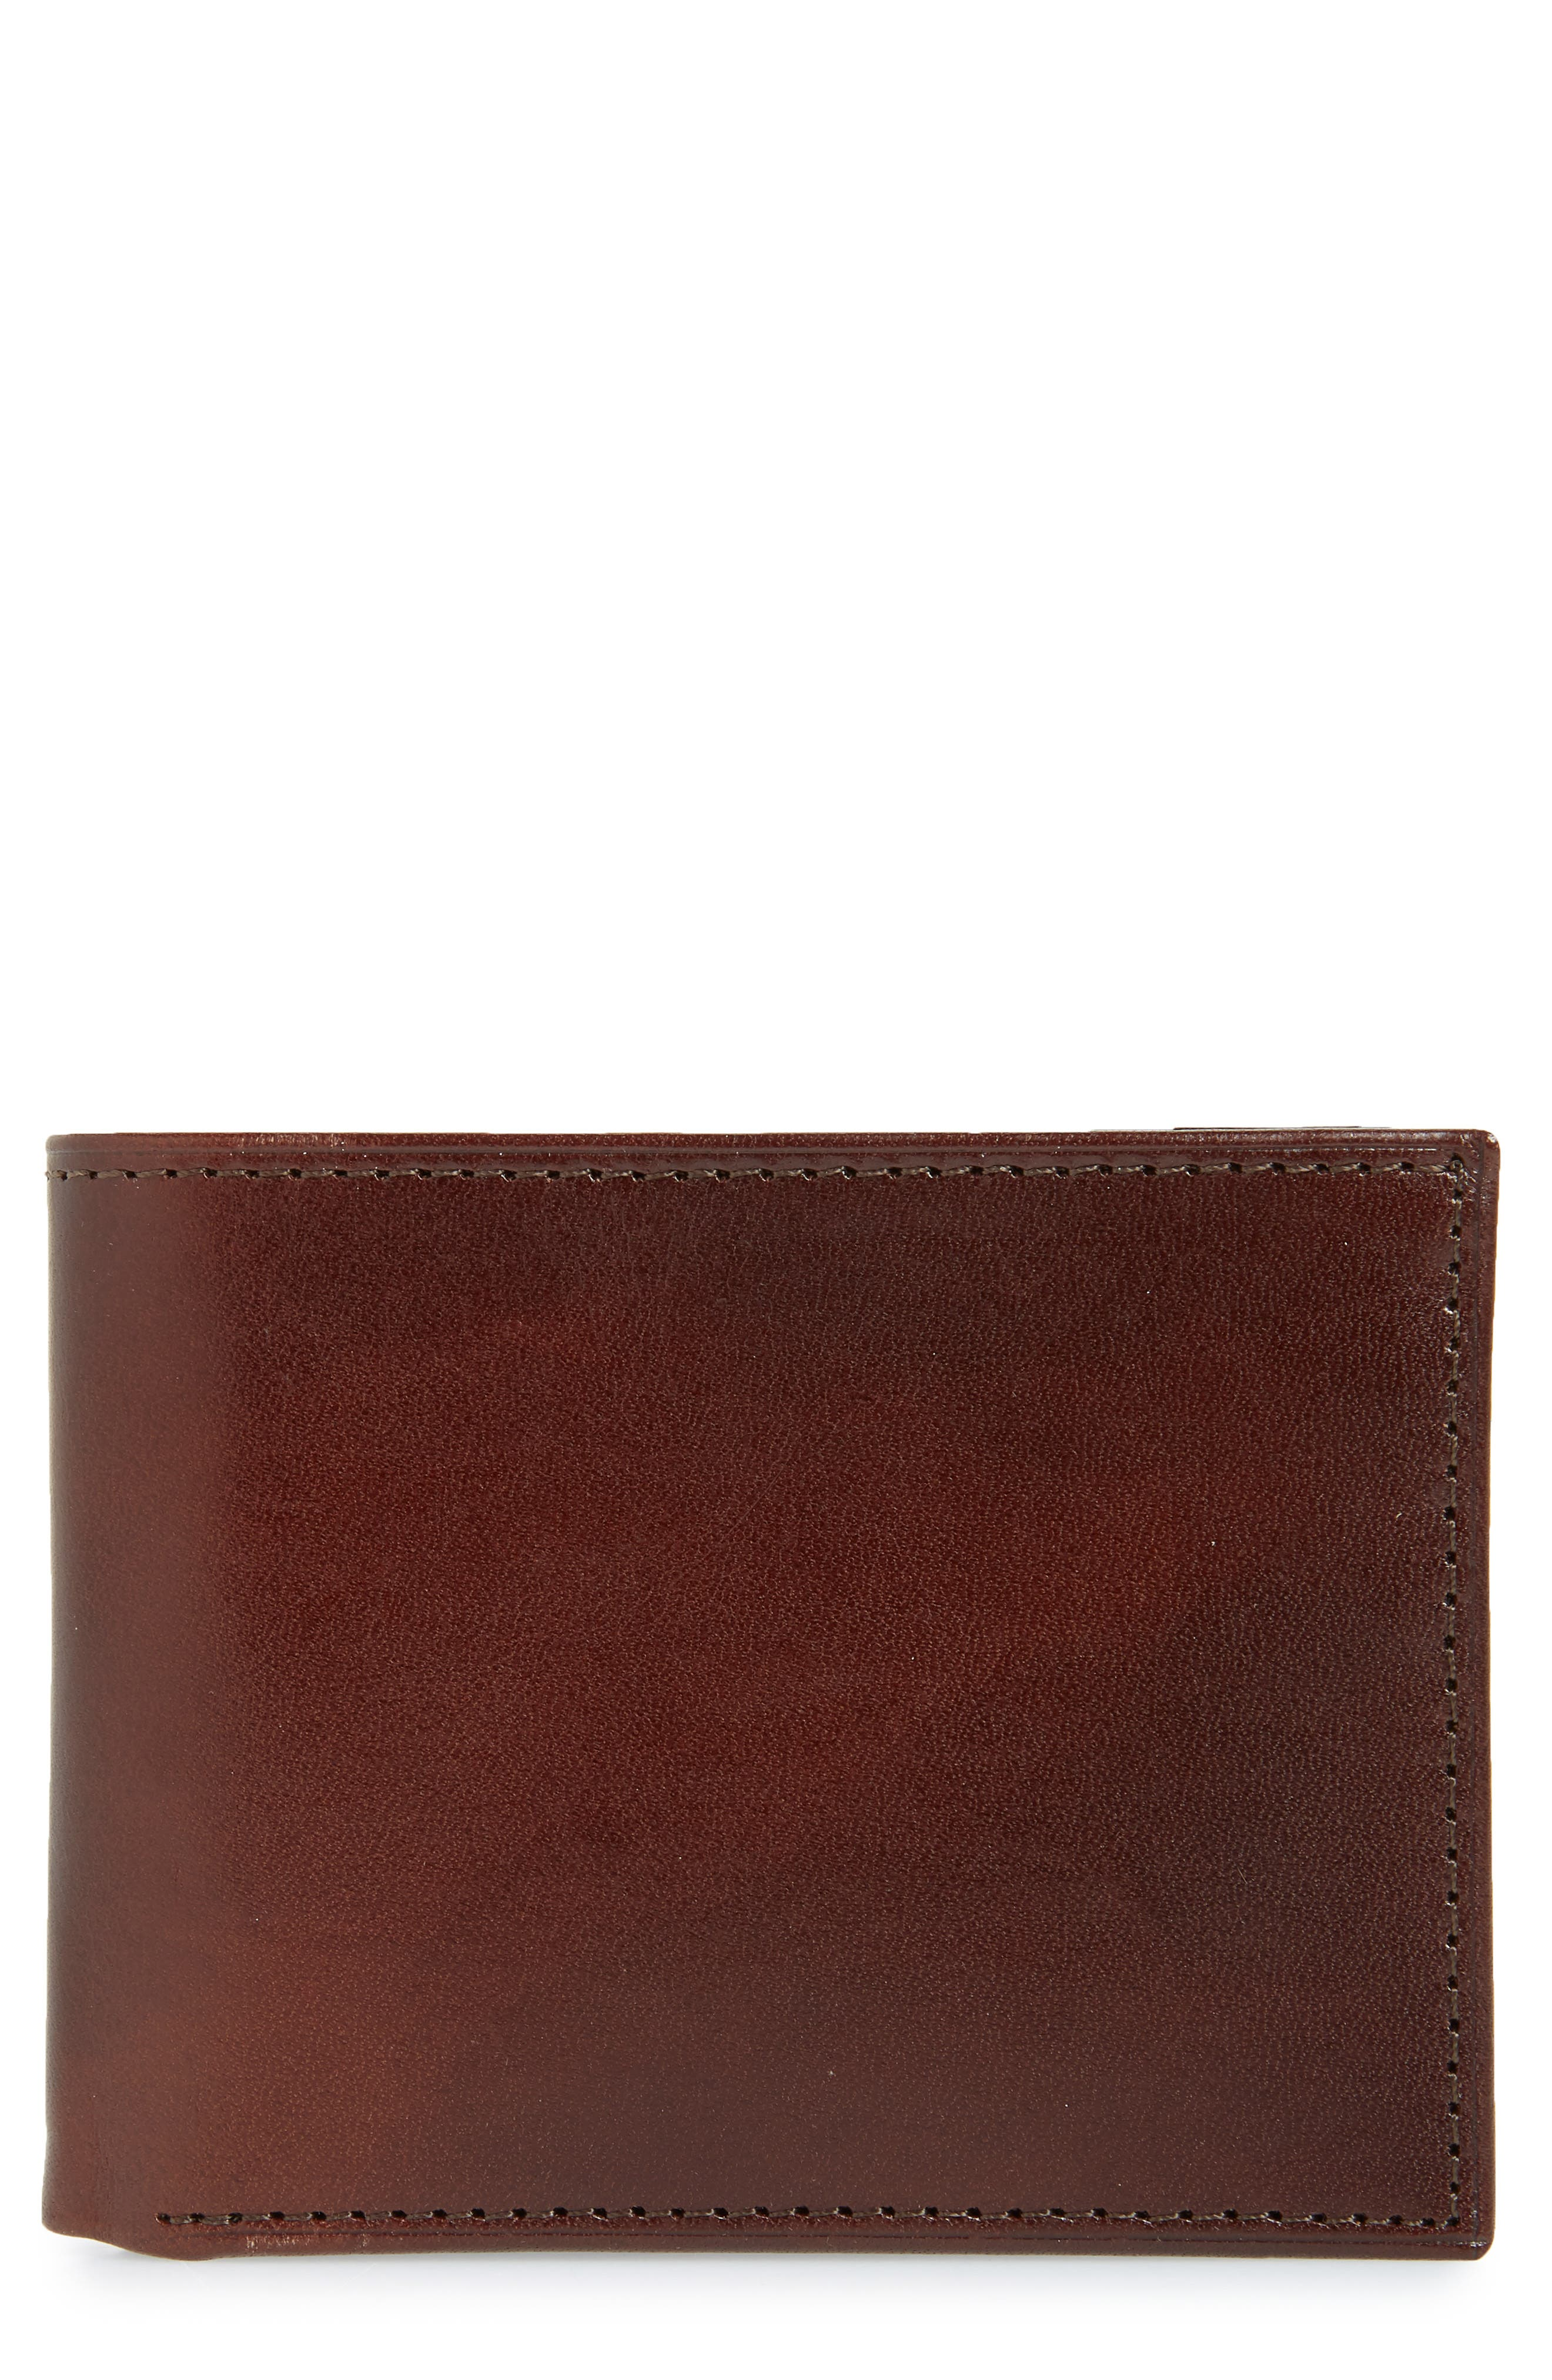 Slimfold Leather Wallet,                             Main thumbnail 1, color,                             Brown